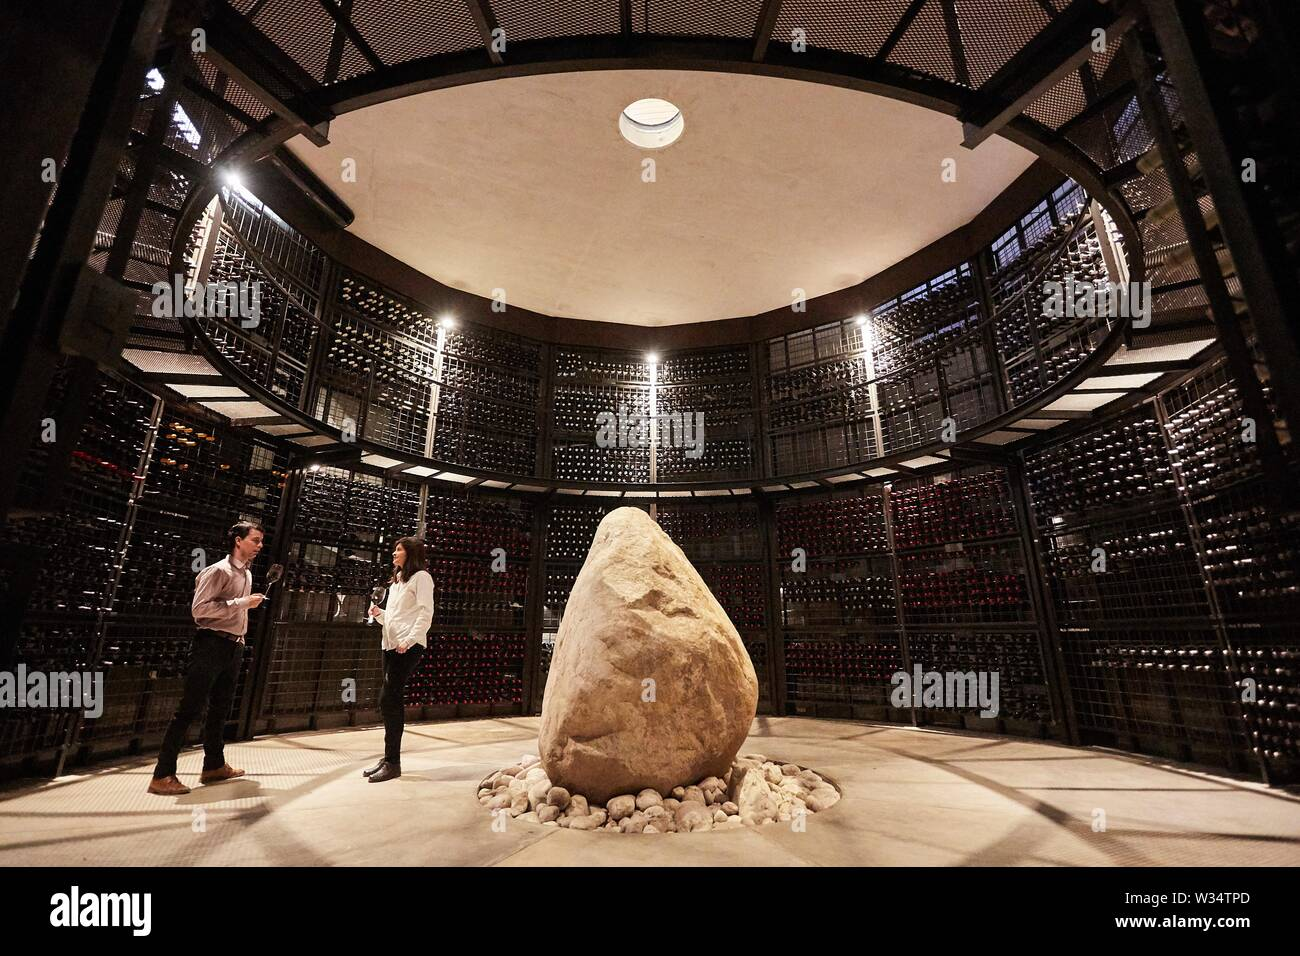 11 July 2019, Argentina, San Carlos: Two visitors drink wine surrounded by wine bottles in the wine cellar of Piedra Infinita wine. The Argentinian winery Piedra Infinita of the brand Zuccardi, was awarded by the World's Best Vineyards Academy as the best winery and winery in the world. This award recognizes the best 50 wineries in the world, based on the experience offered to the visitor. Photo: Marcelo Aguilar/dpa - Stock Image